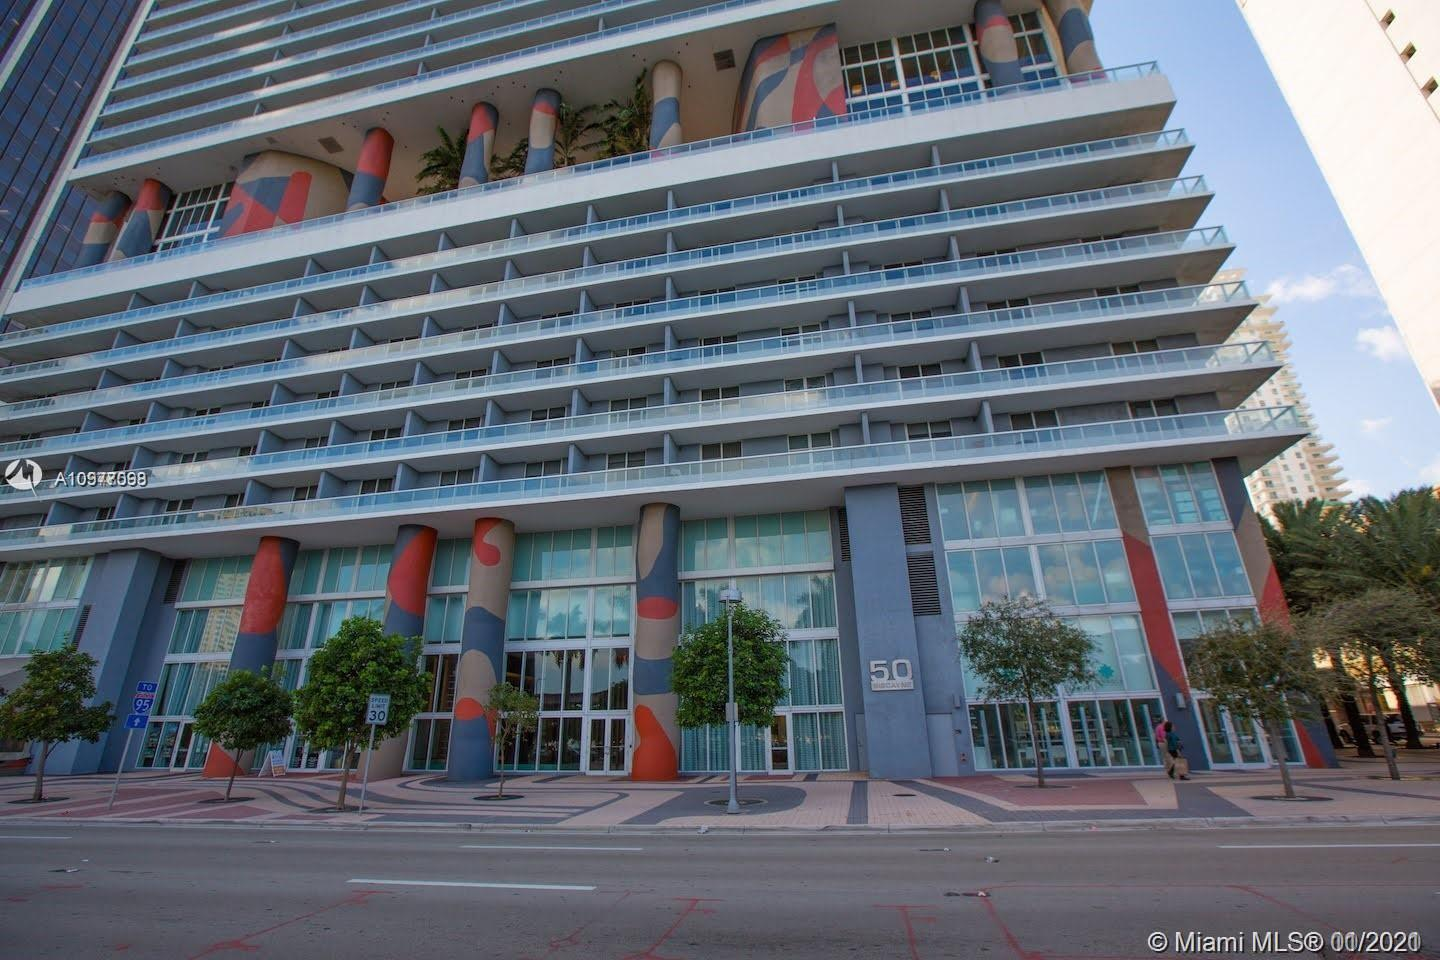 BEAUTIFUL CORNER 2 BEDROOMS 2 BATHS SPLIT PLAN. HUGE WRAP AROUND BALCONIY WITH AMAZING CITY, BAY AND PORT OF MIAMI VIEWS. 24 X 24 MODERN LIGHT FRAY THROUGH OUT.